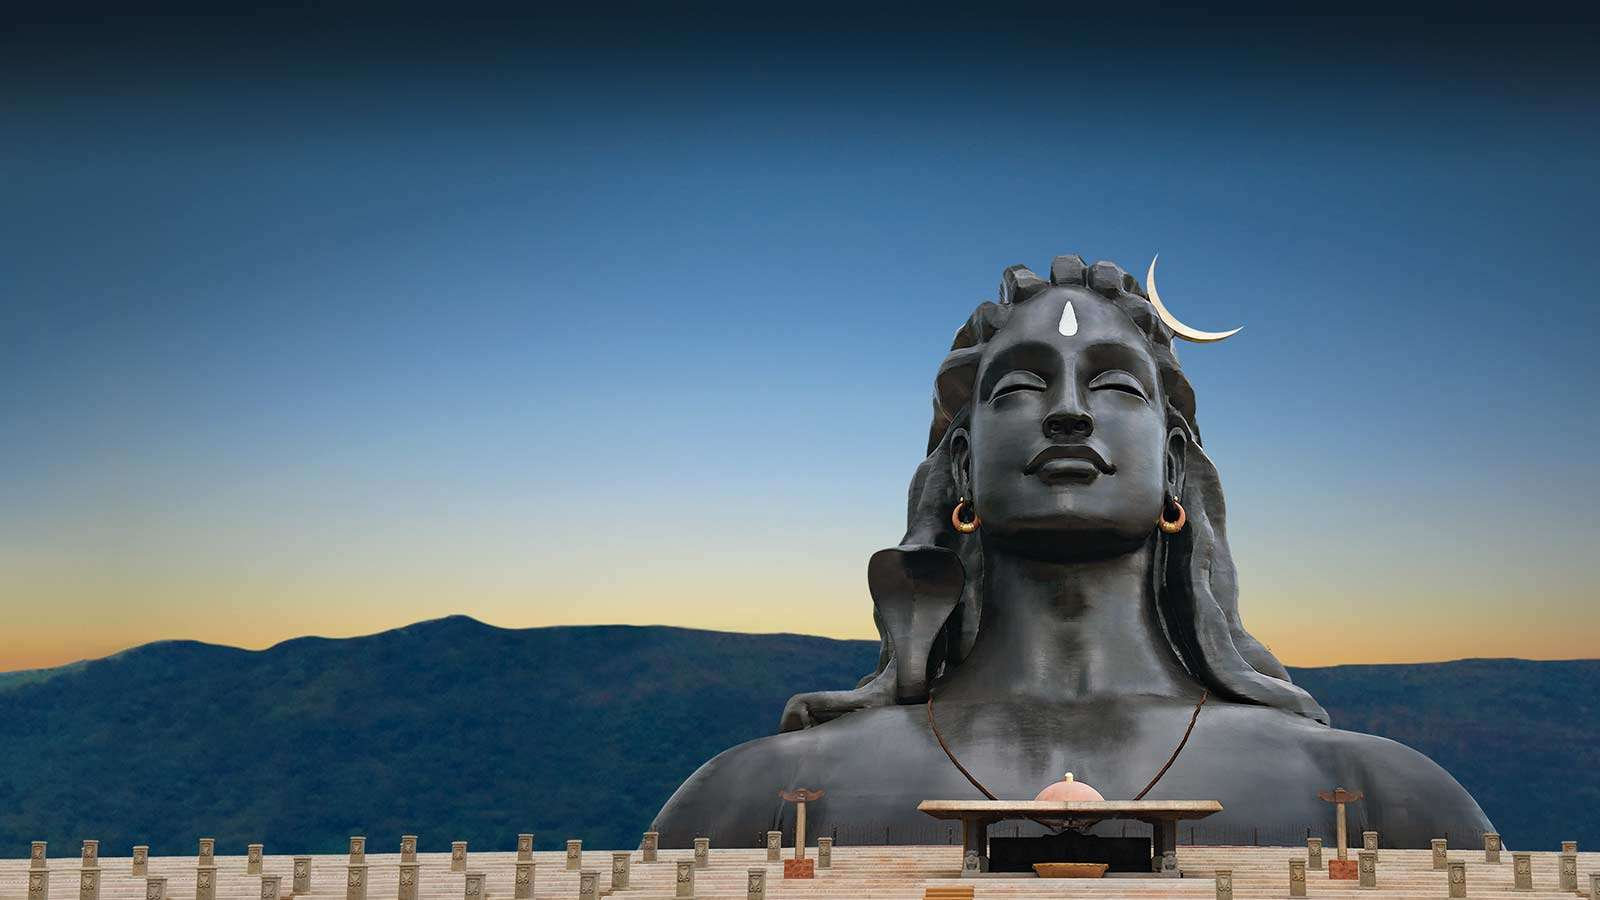 Mahashivratri 2021 11th March 2021 Celebrate Mahashivratri With Sadhguru